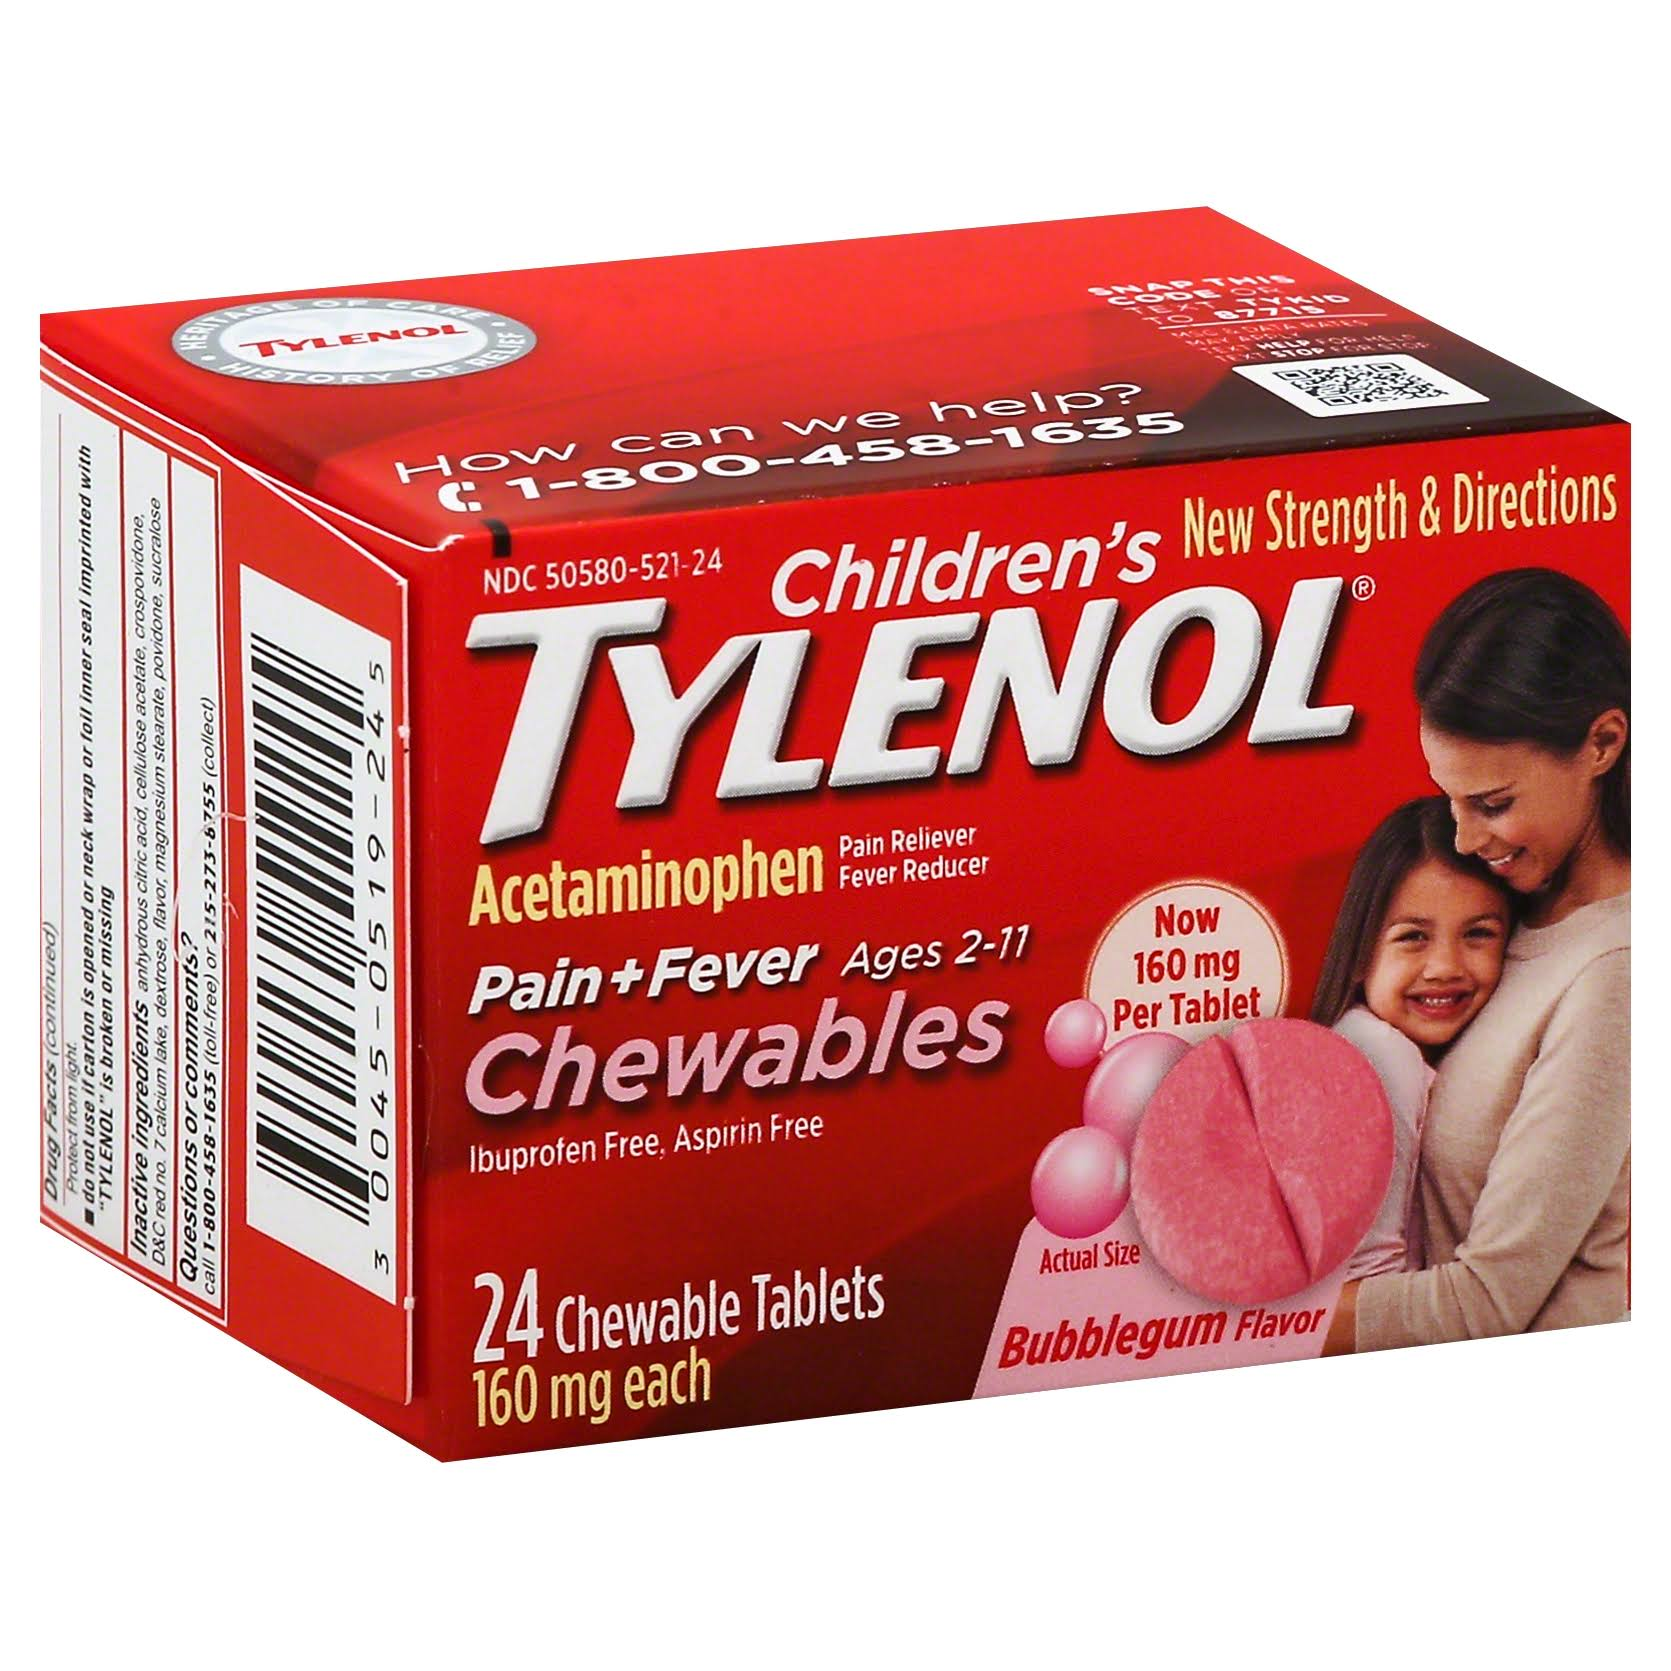 Tylenol Children's Pain Relief Chewables - Bubblegum